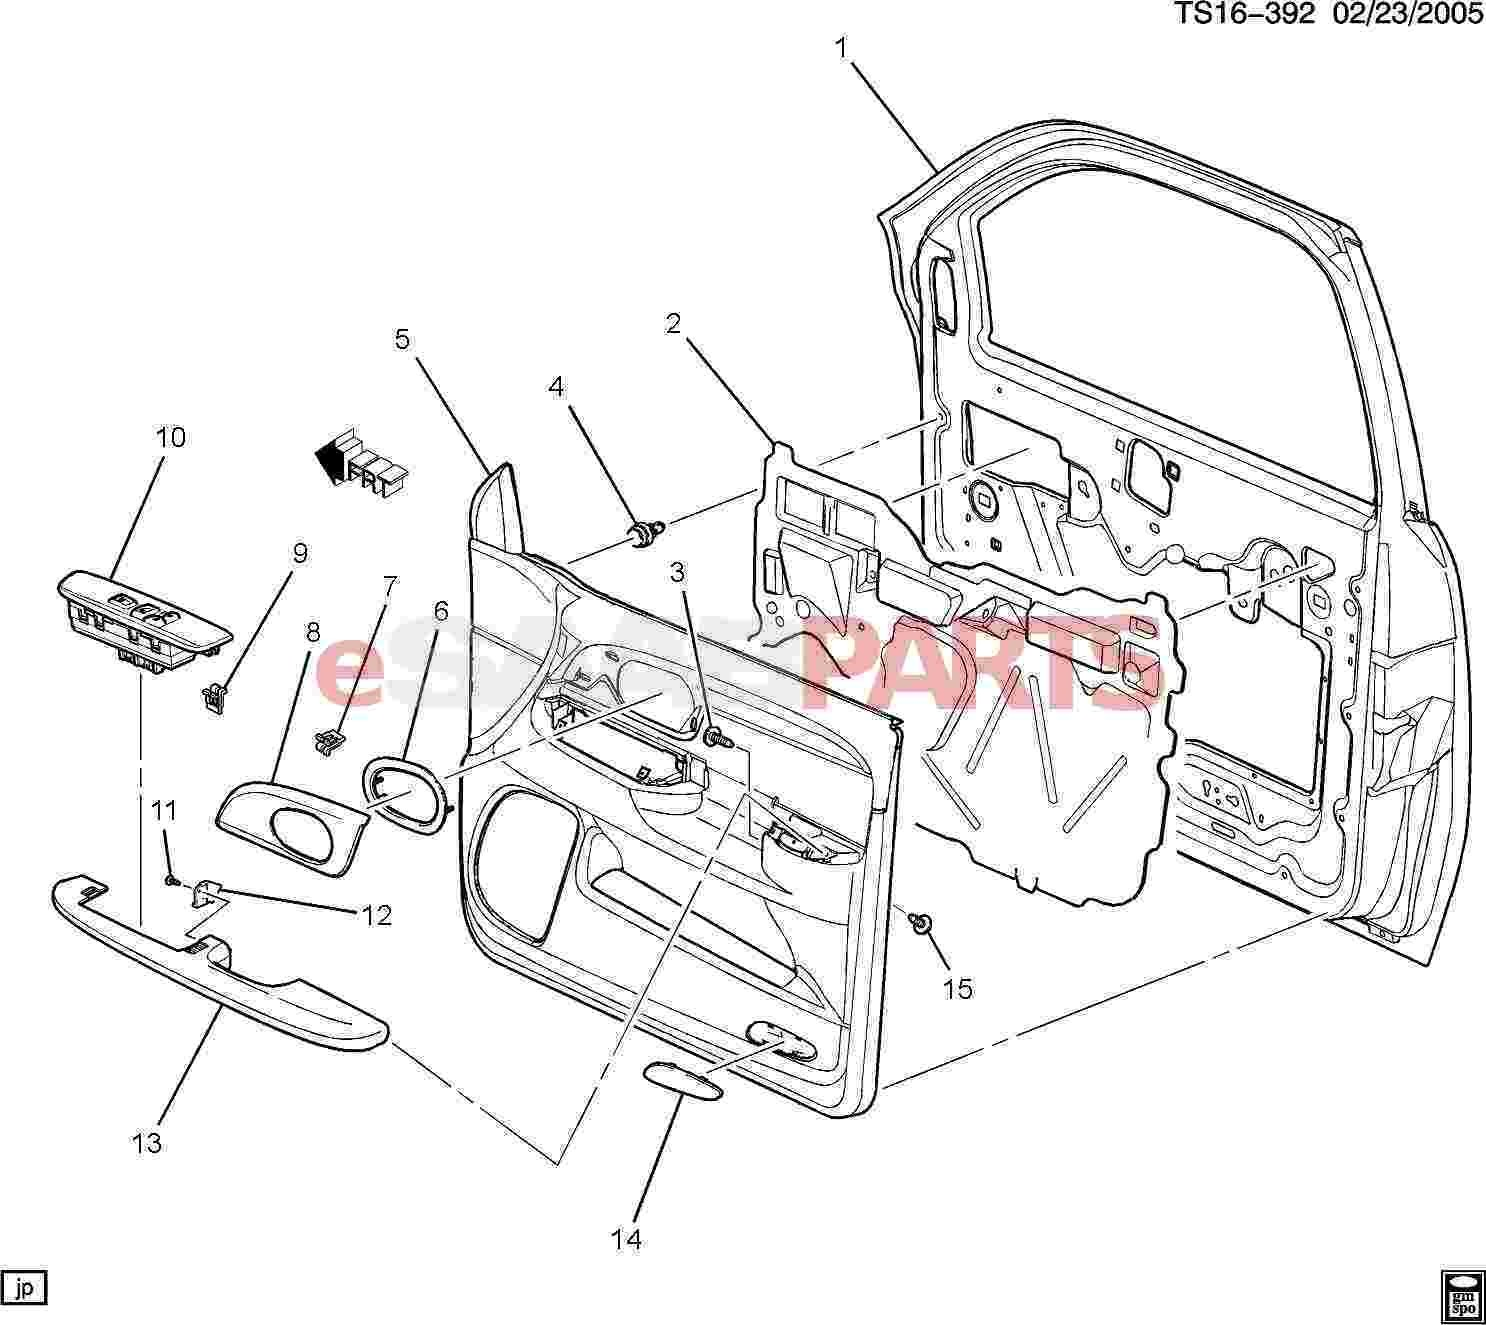 Basic Diagram Of Car Parts ] Saab Bolt Hwh M4 2x1 41x18 12 5 Od 6010m Power